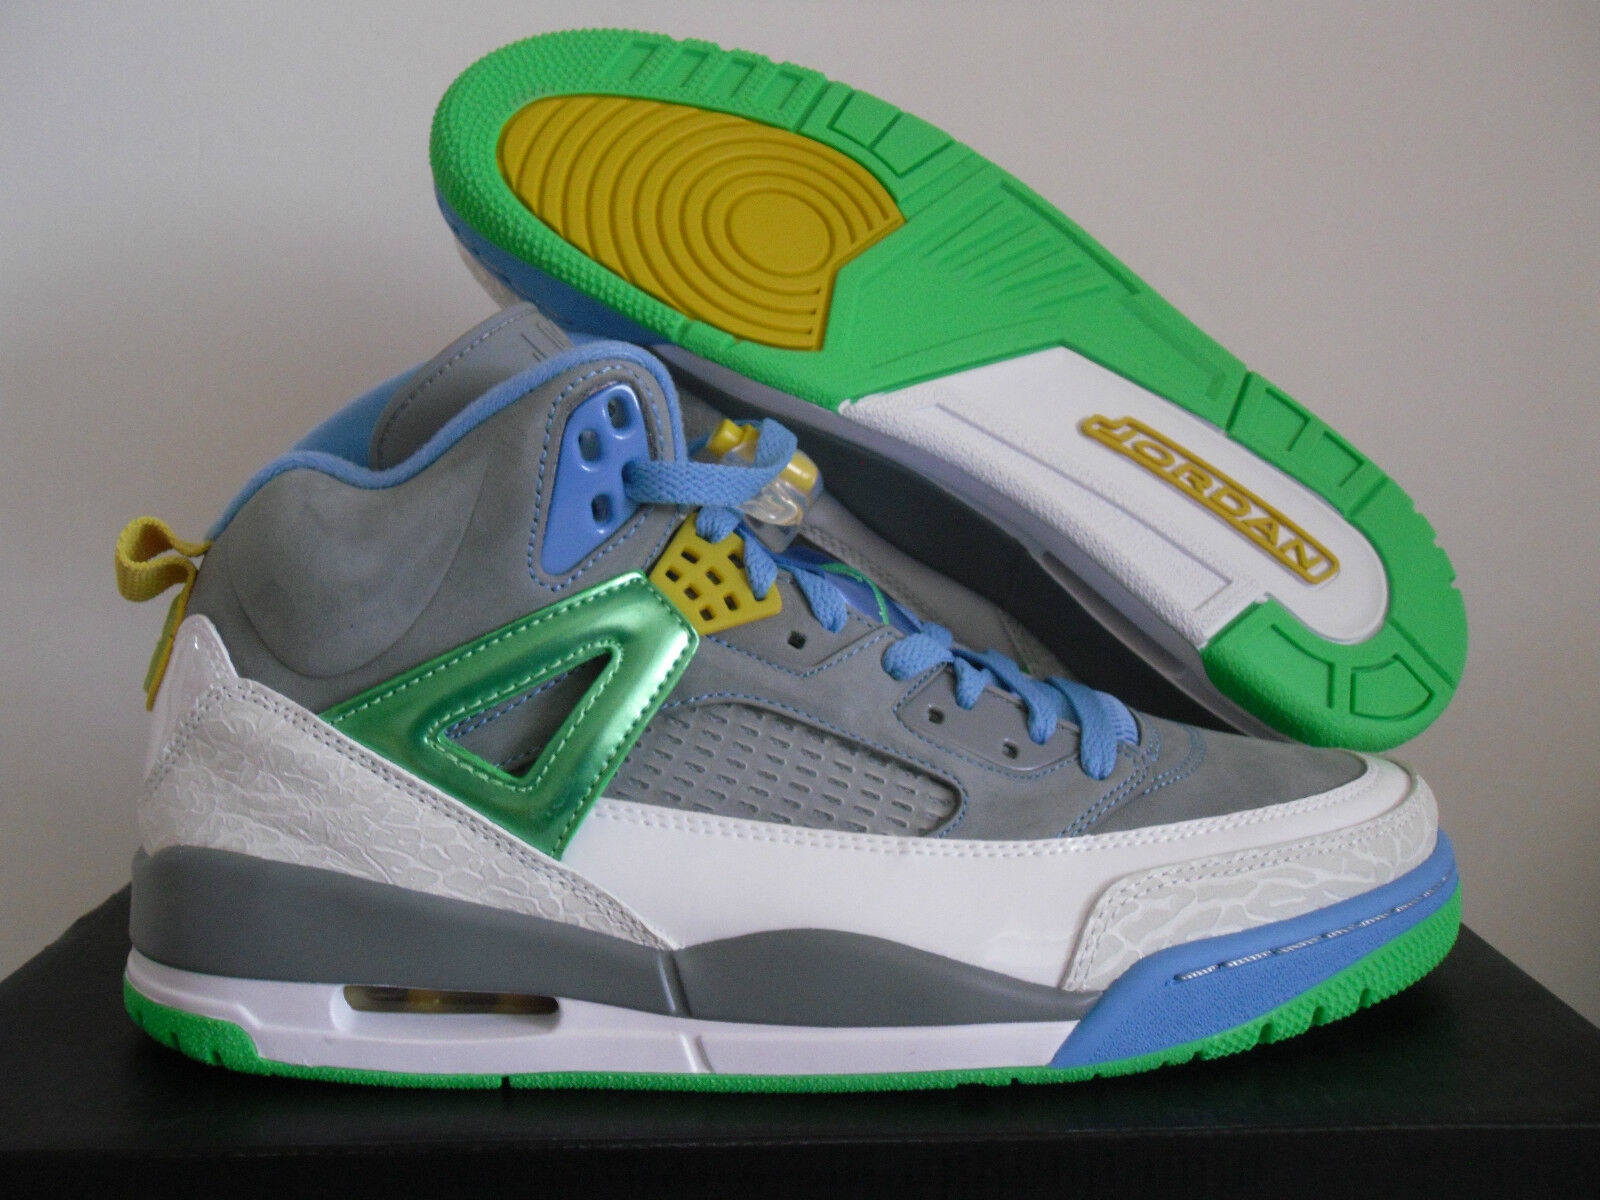 NIKE AIR JORDAN SPIZIKE STEALTH GREY-GREEN-blueE SZ 13 EASTER  [315371-056]